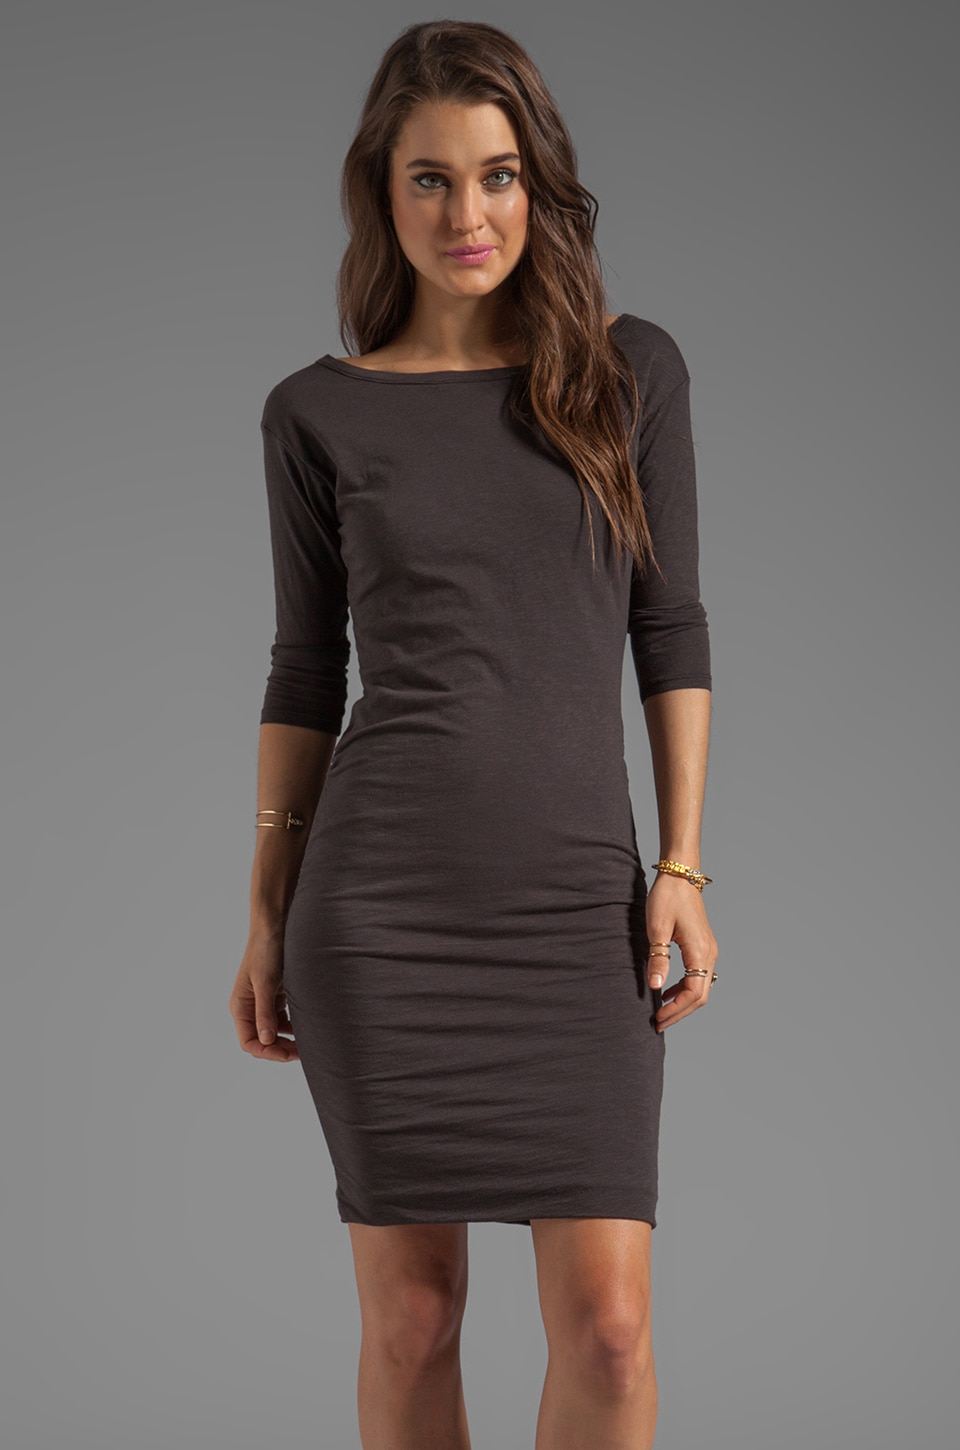 SUNDRY 3/4 Sleeved Ruched Dress in Old Black